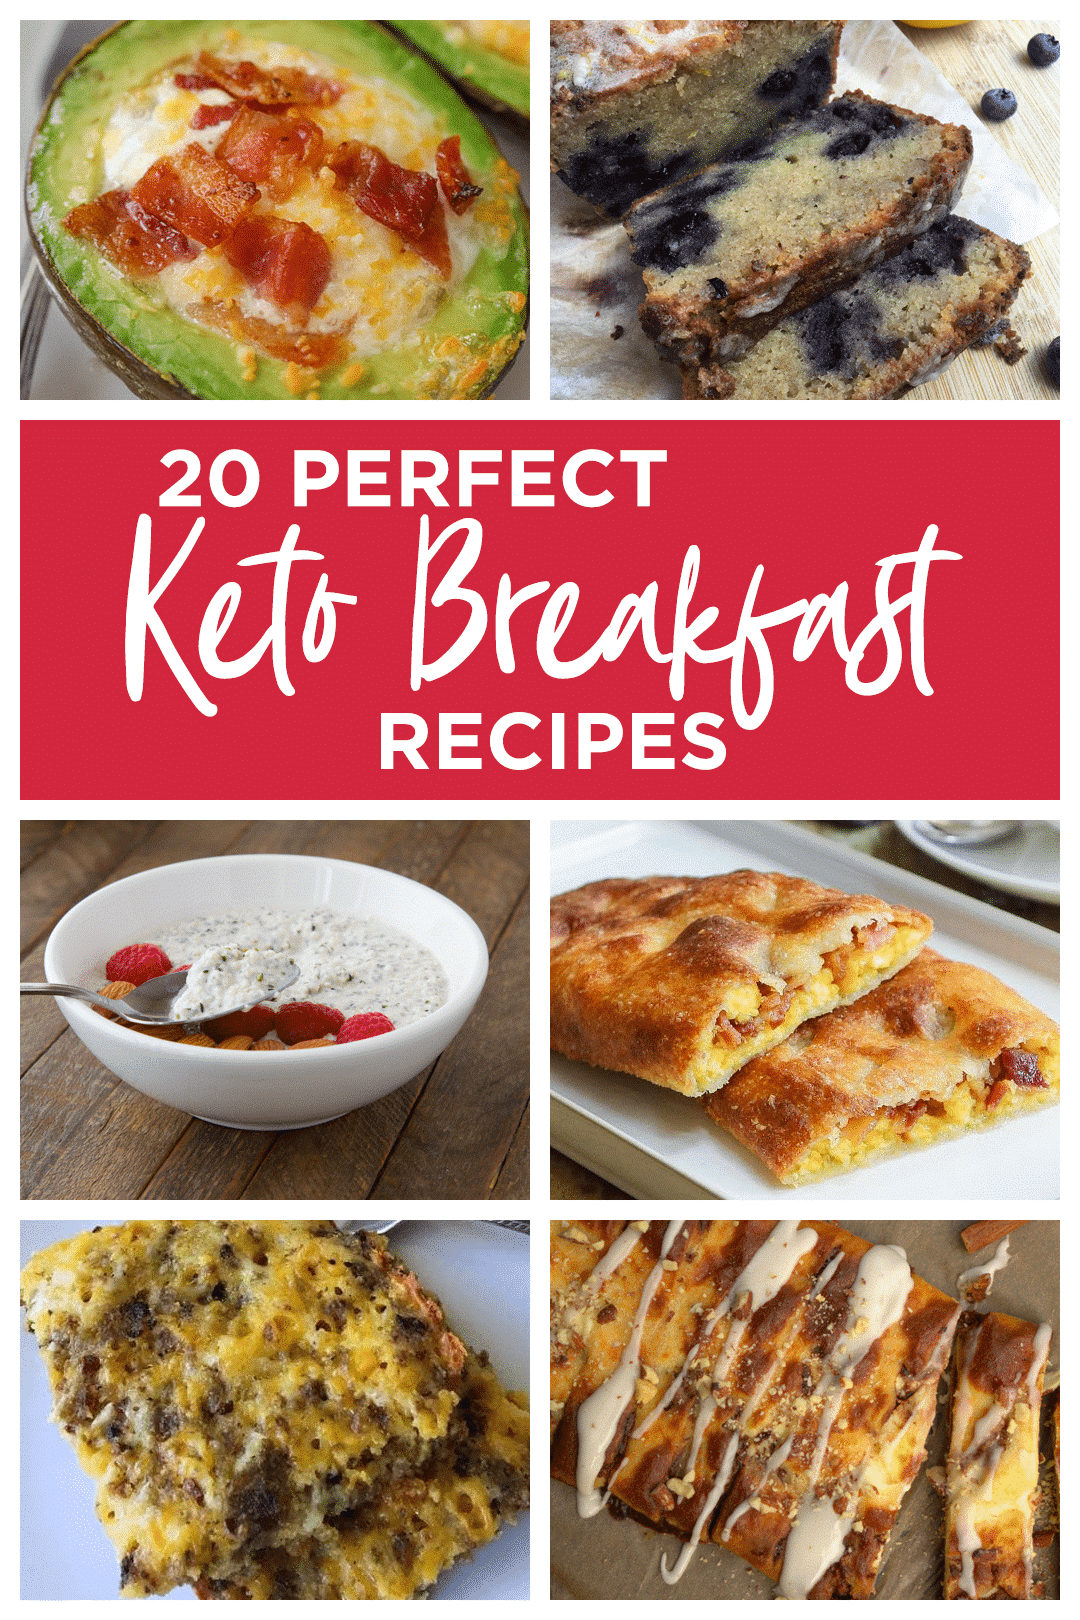 20 Perfect Keto Breakfast Recipes